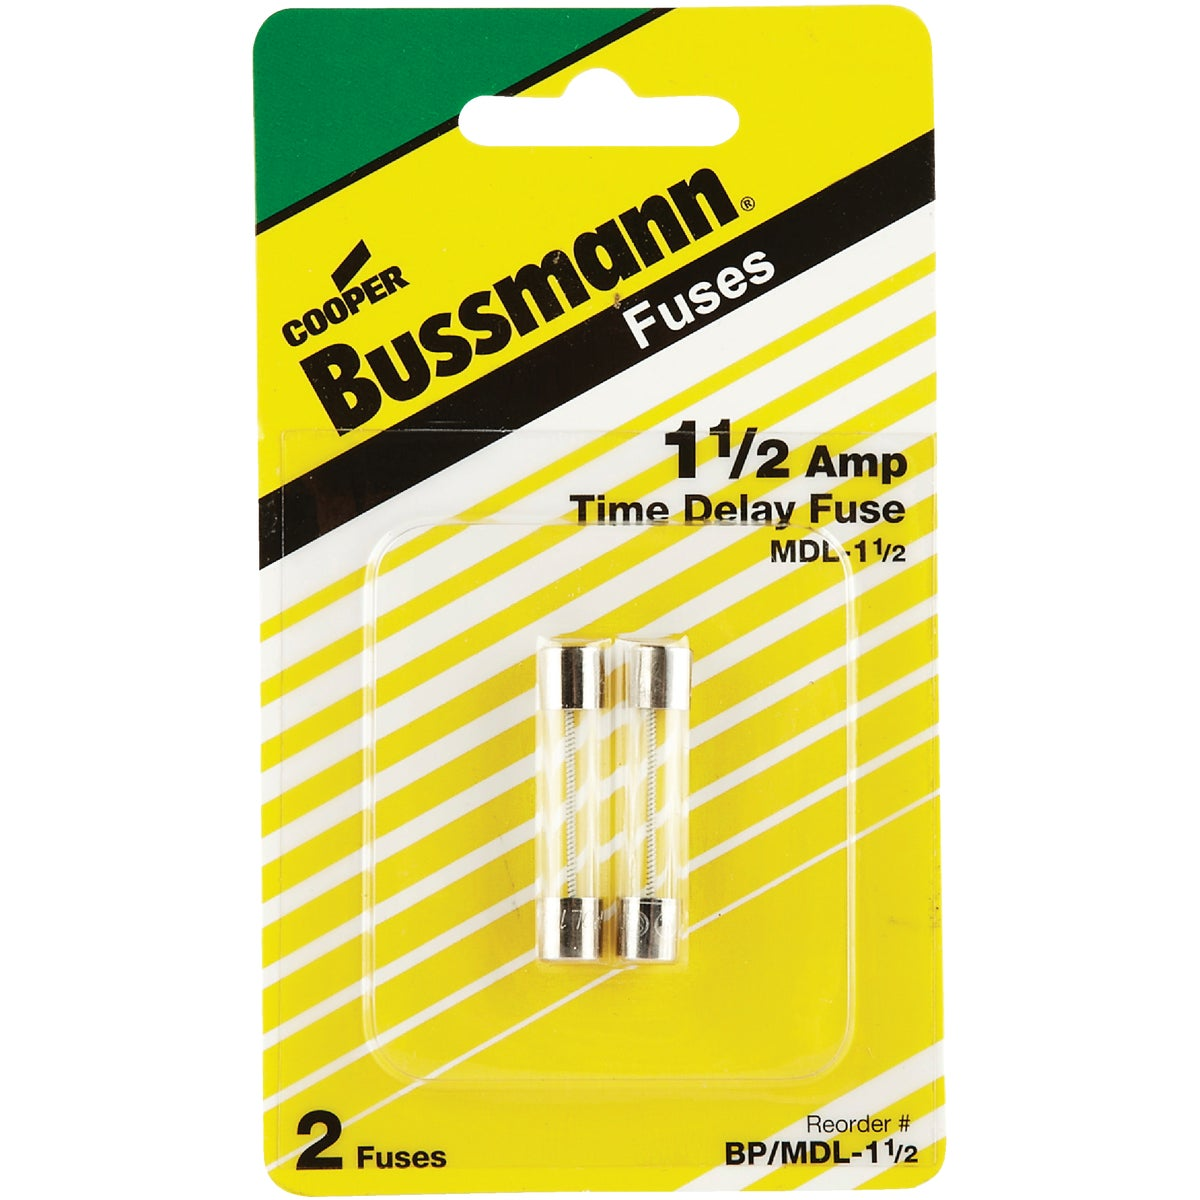 1-1/2A ELECTRONIC FUSE - BP/MDL-1-1/2 by Bussmann Cooper